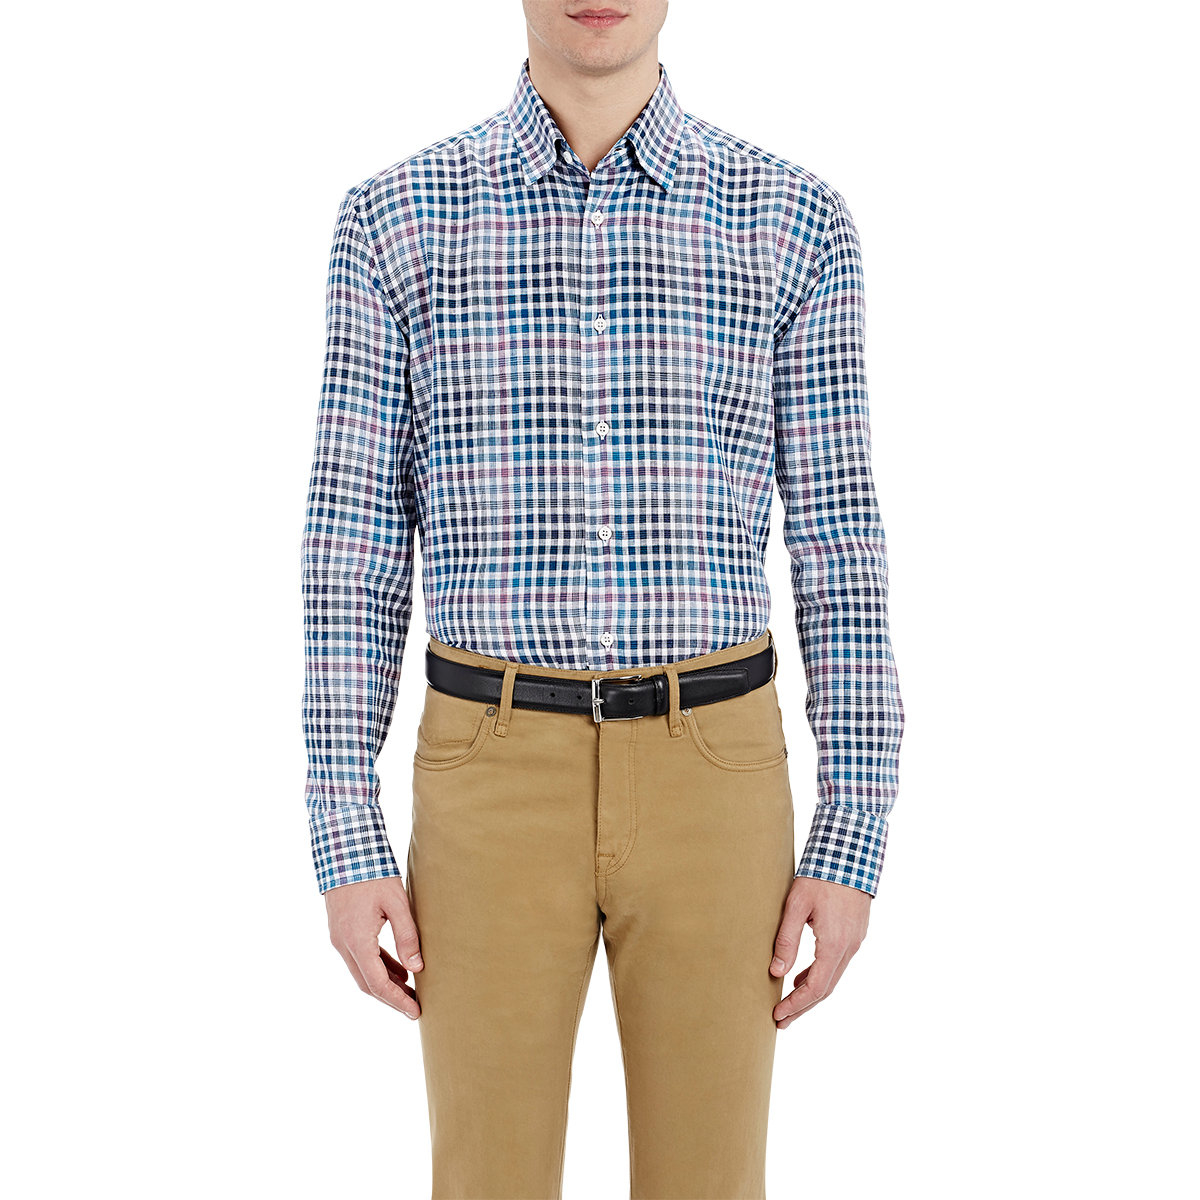 Brioni Checked Linen Shirt in Blue for Men